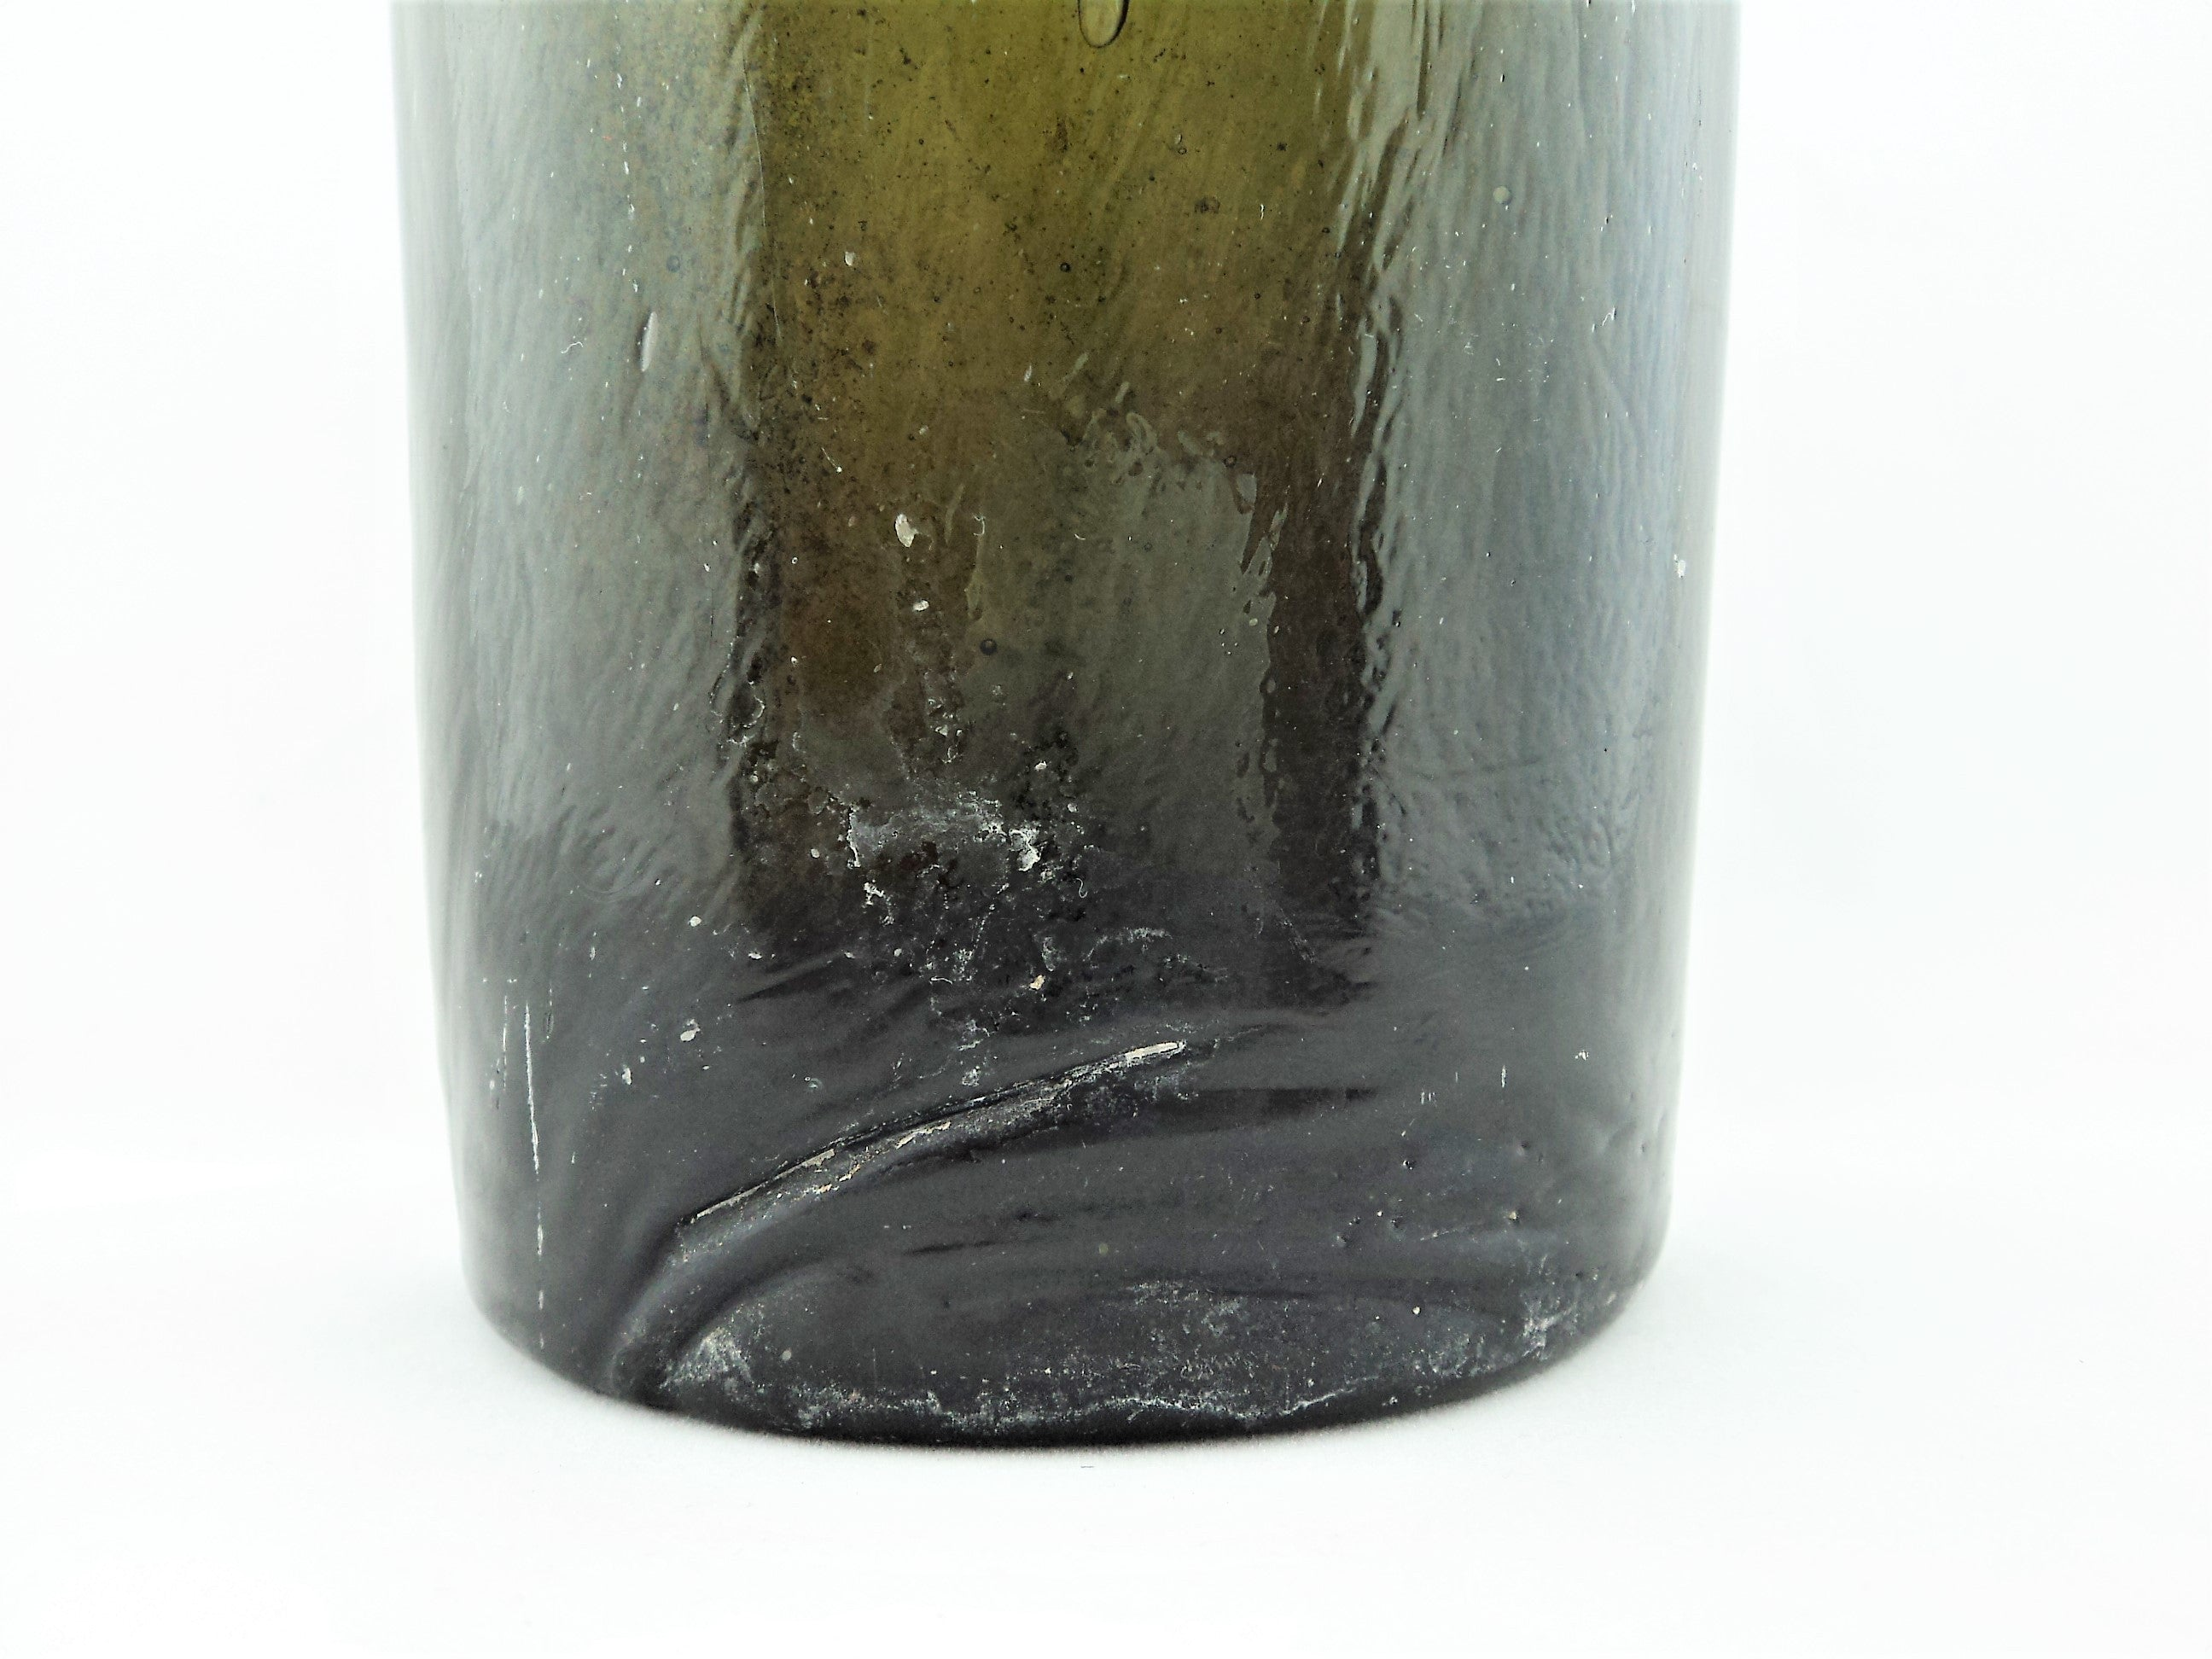 Antique Olive Green French Wine Bottle